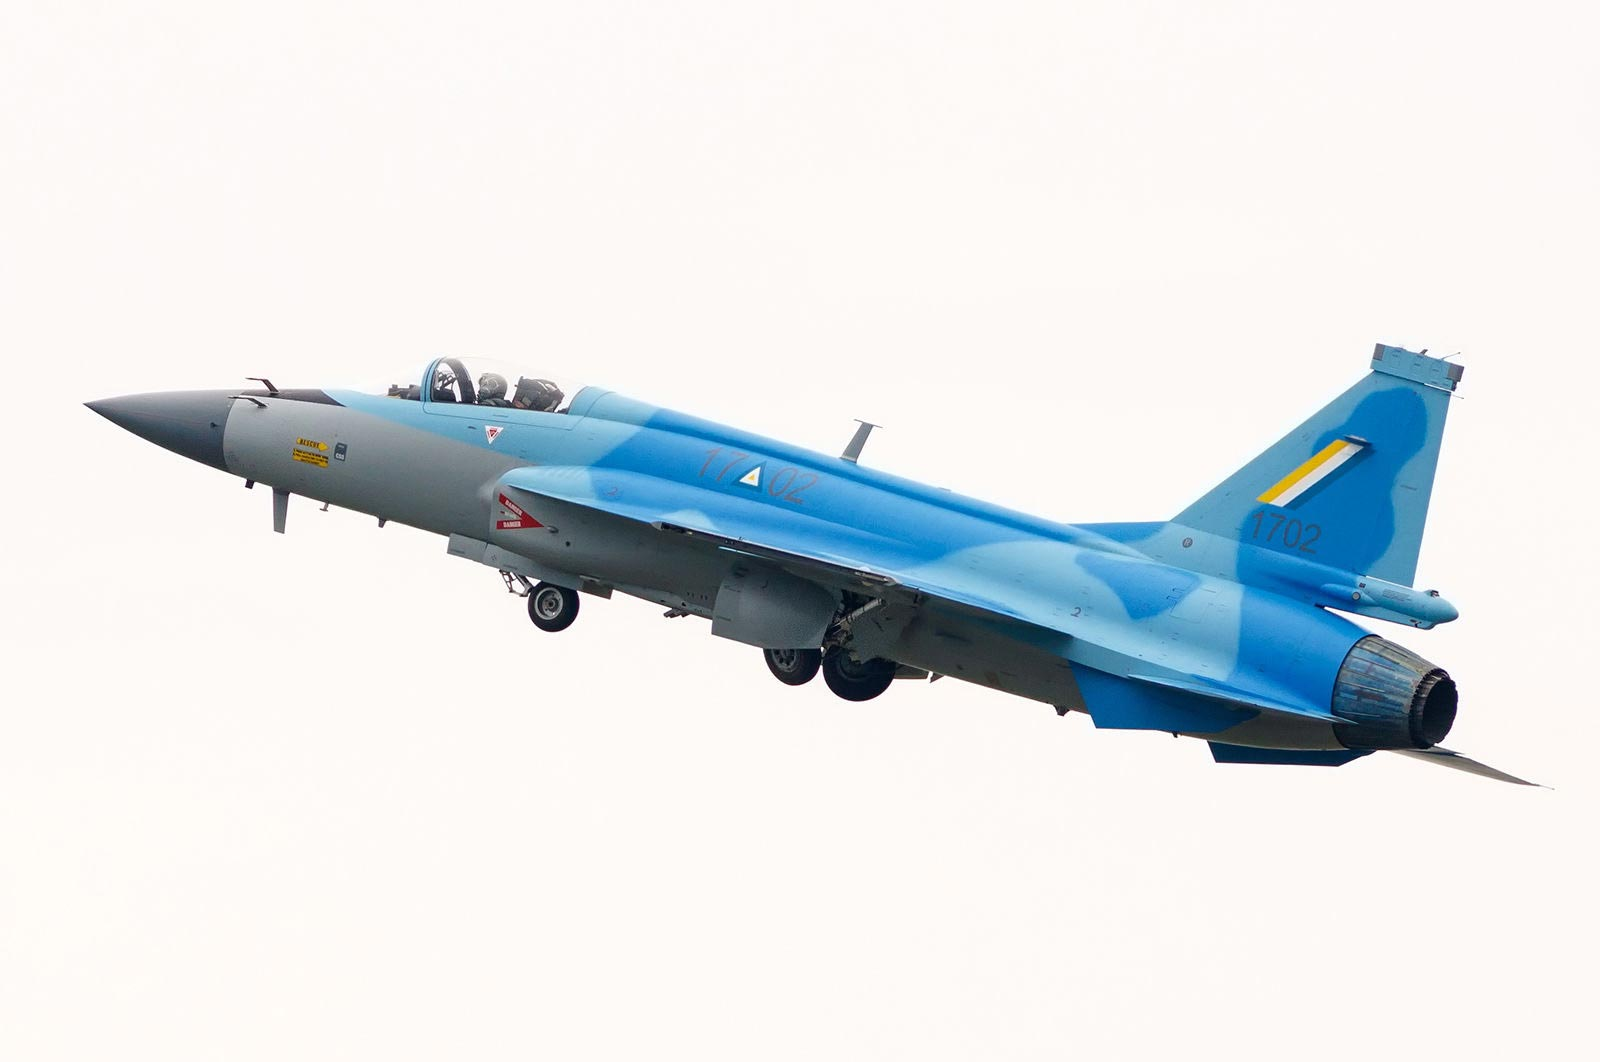 Myanmar_Air_Force_JF-17_FC-1_Fighter.jpg